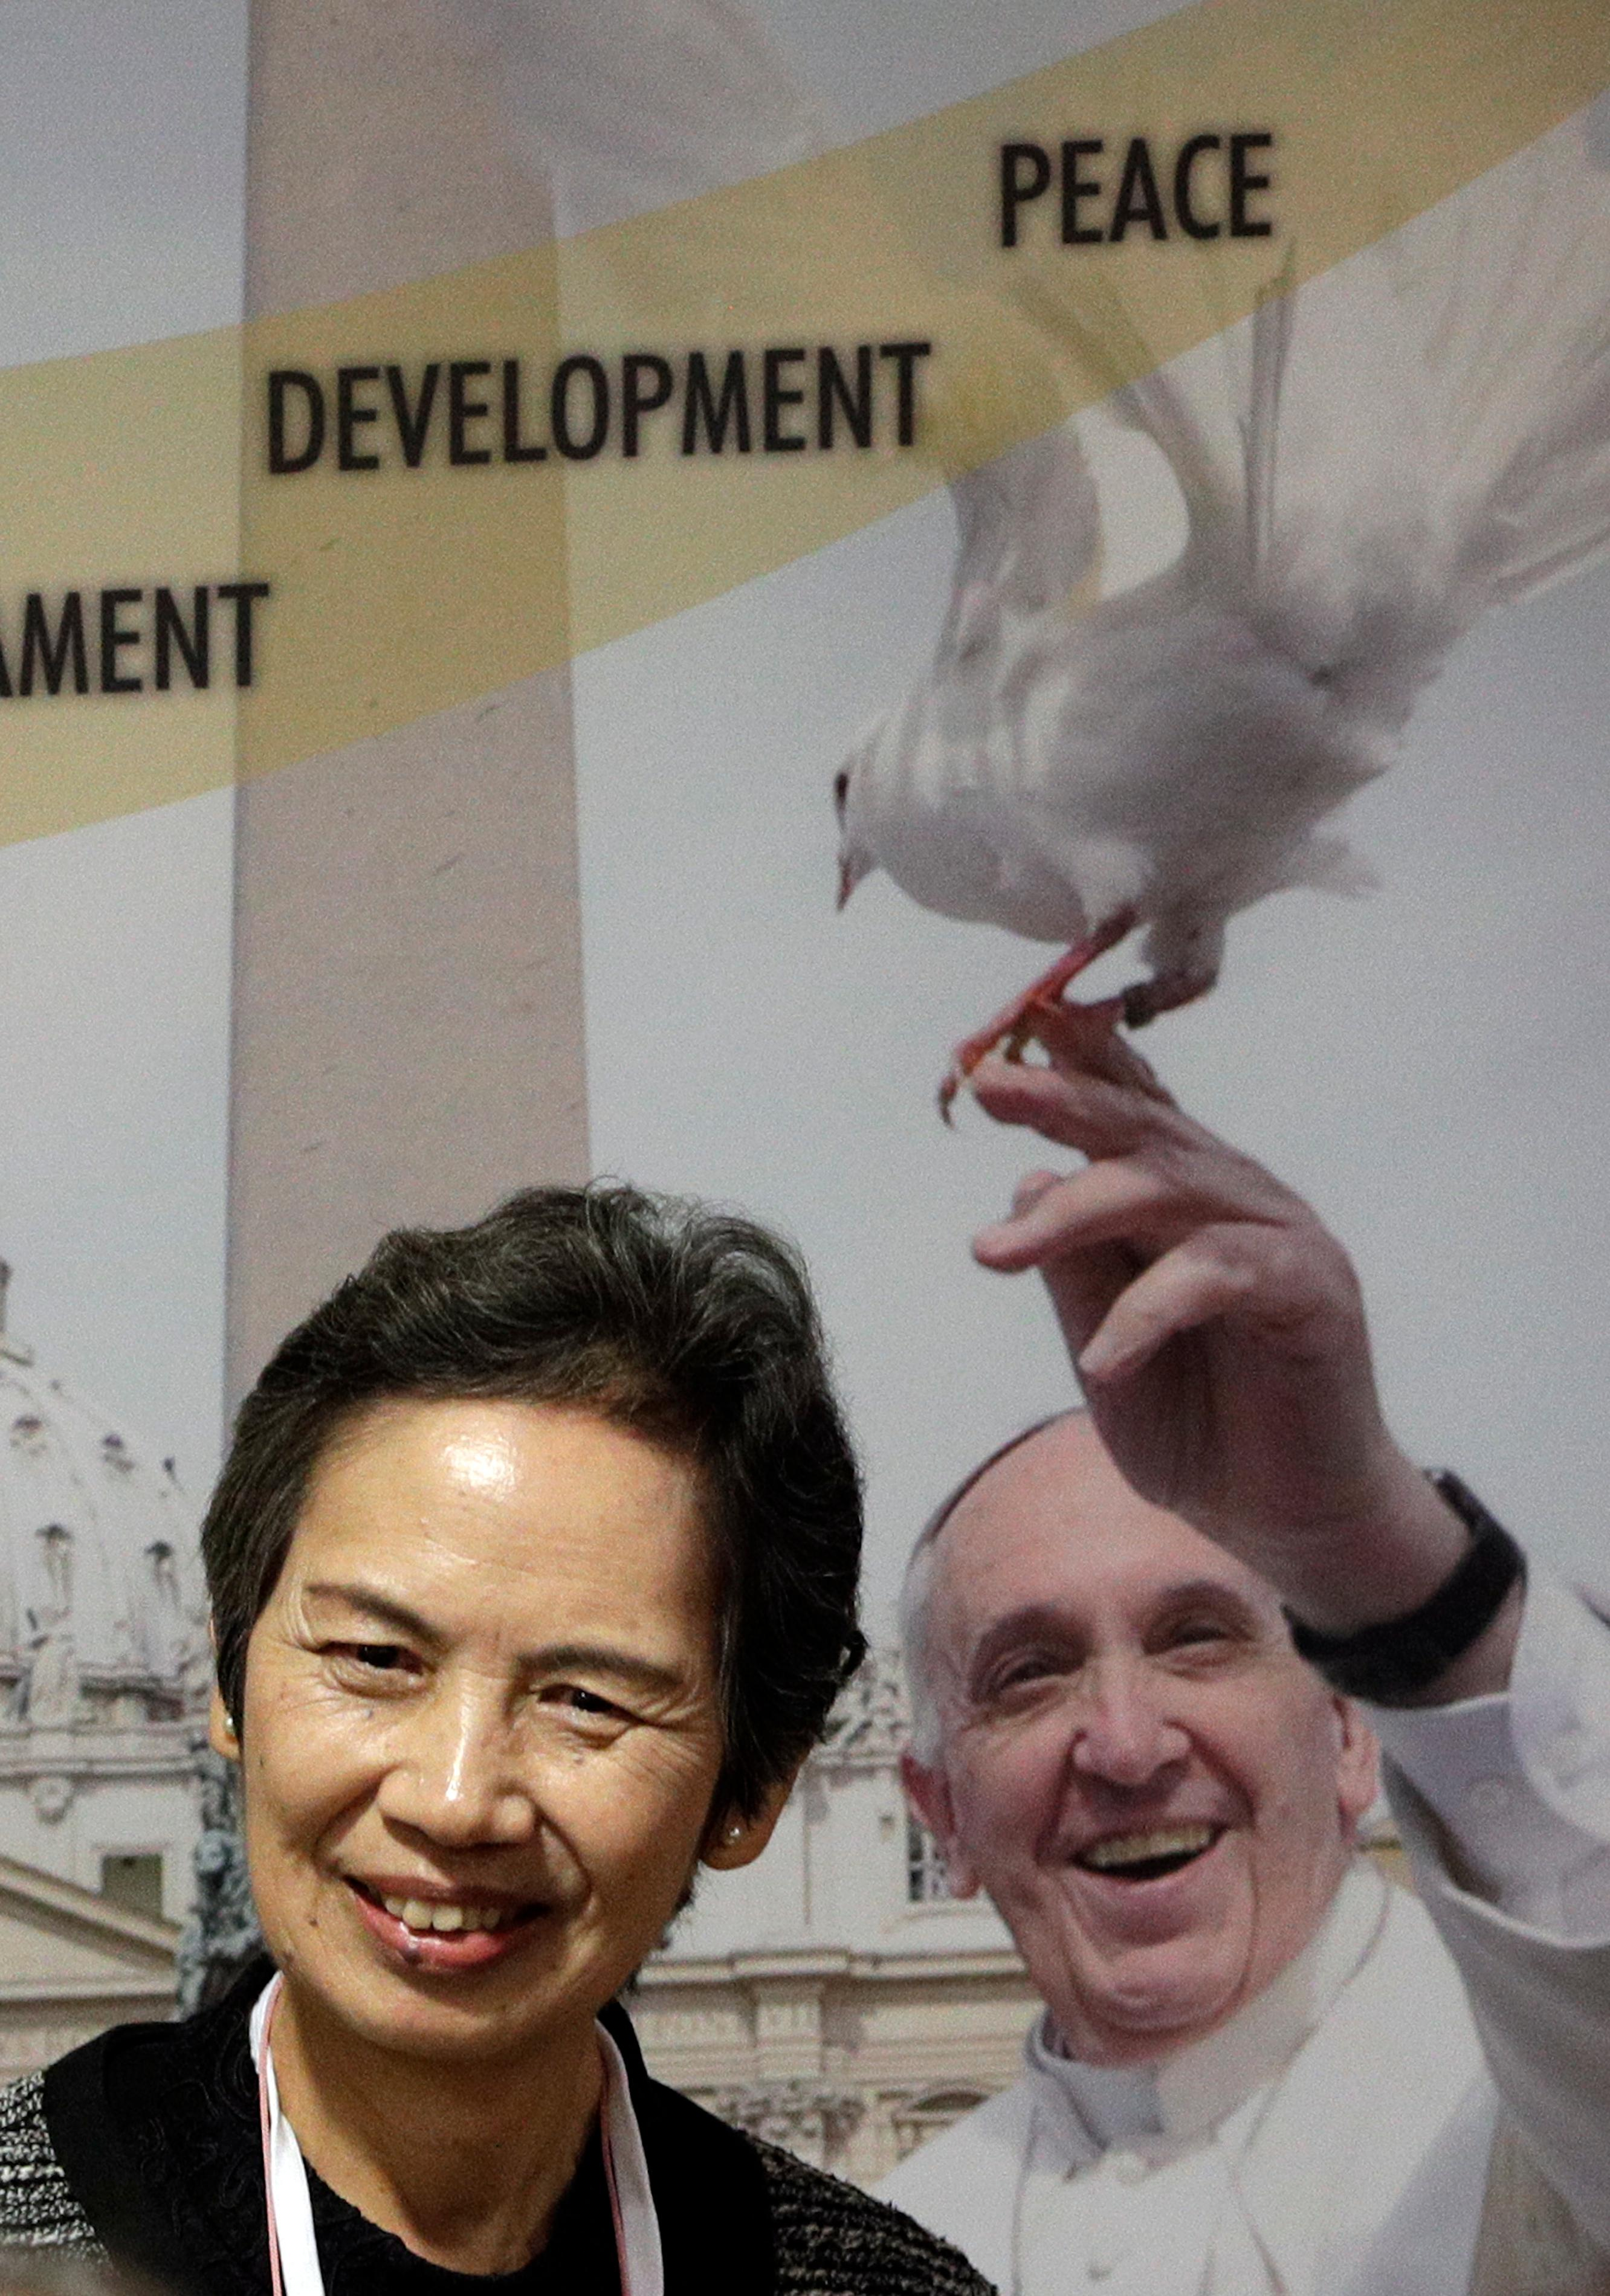 Assitant Secretary General Nihon Hidankyo and atomic bomb survivor Masako Wada smiles in front of a poster showing Pope Francis as she attends a conference on nuclear disarmament, at the Vatican, Friday, Nov. 10, 2017. The Vatican hosted Nobel laureates, U.N. and NATO officials and a handful of nuclear powers at a conference aimed at galvanizing support for a global shift from the Cold War era policy of nuclear deterrence to one of total nuclear disarmament. (AP Photo/Andrew Medichini)